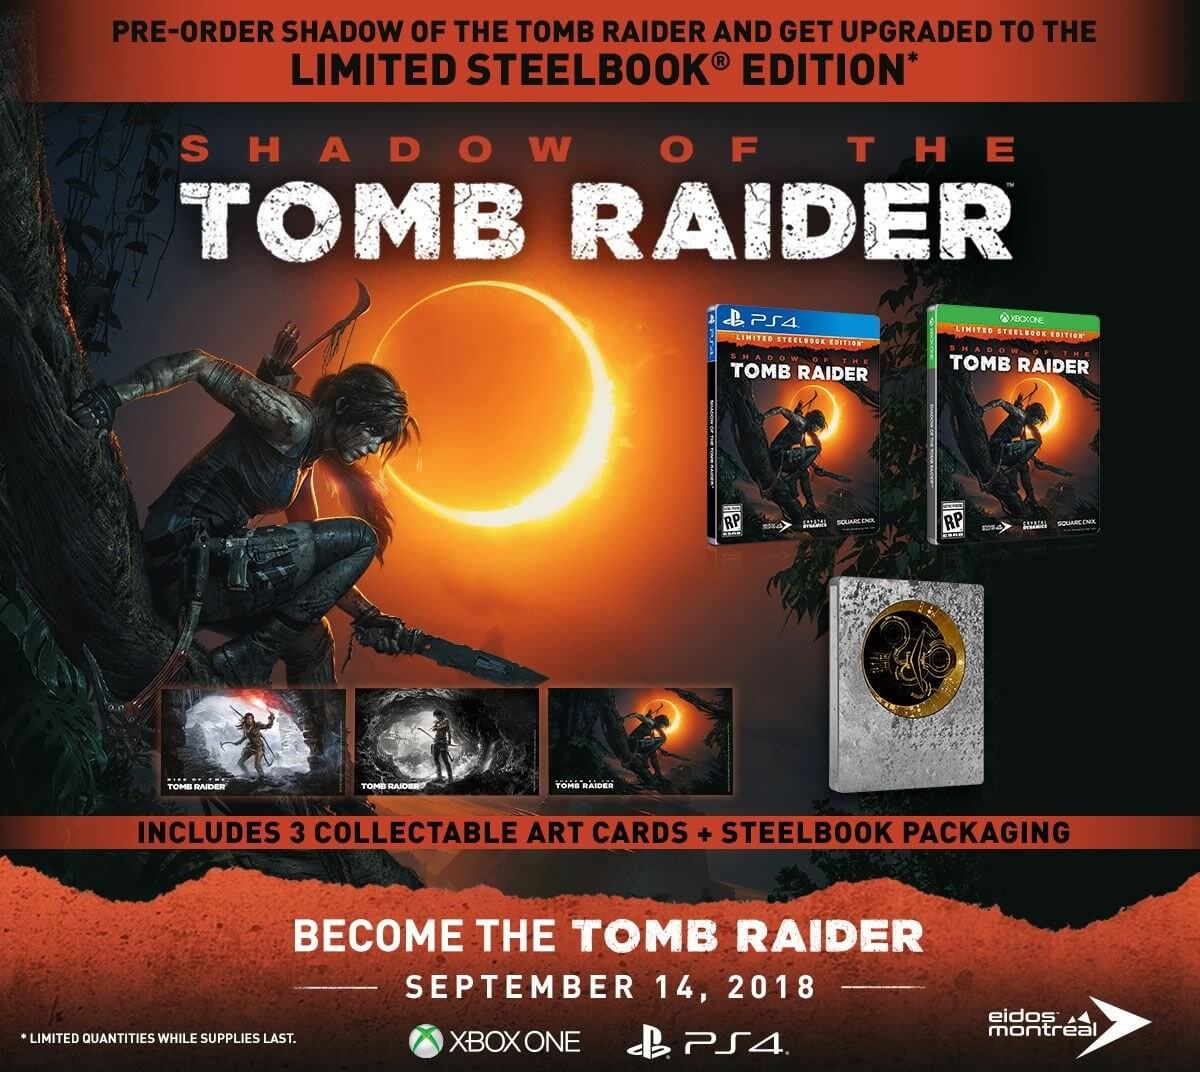 Shadow of the Tomb Raider - Steelbook edition